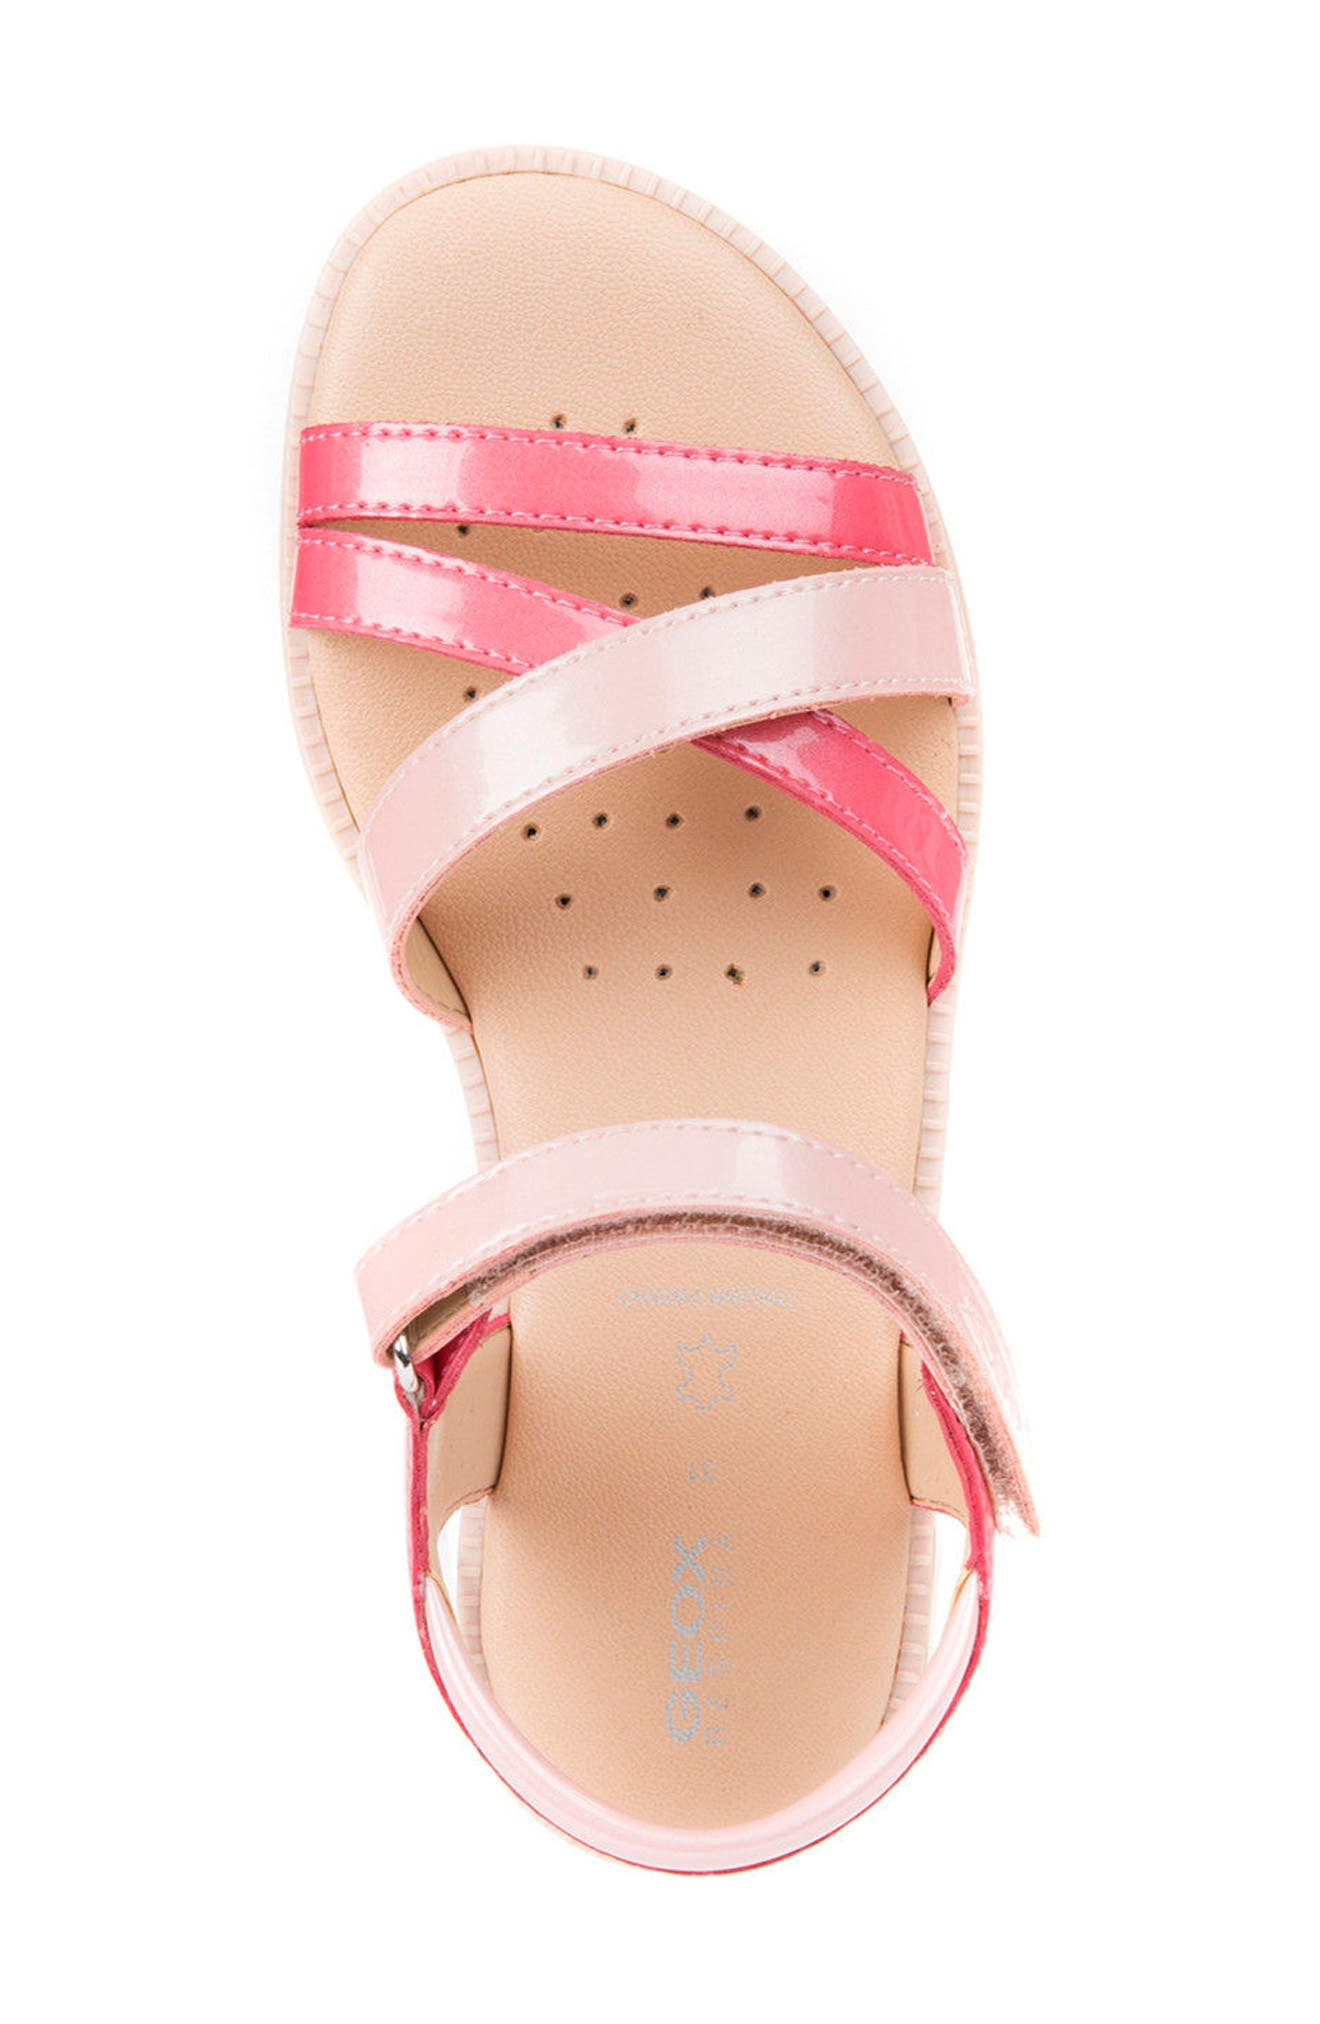 Karly Girl Sandal,                             Alternate thumbnail 5, color,                             Light Coral/ Rose